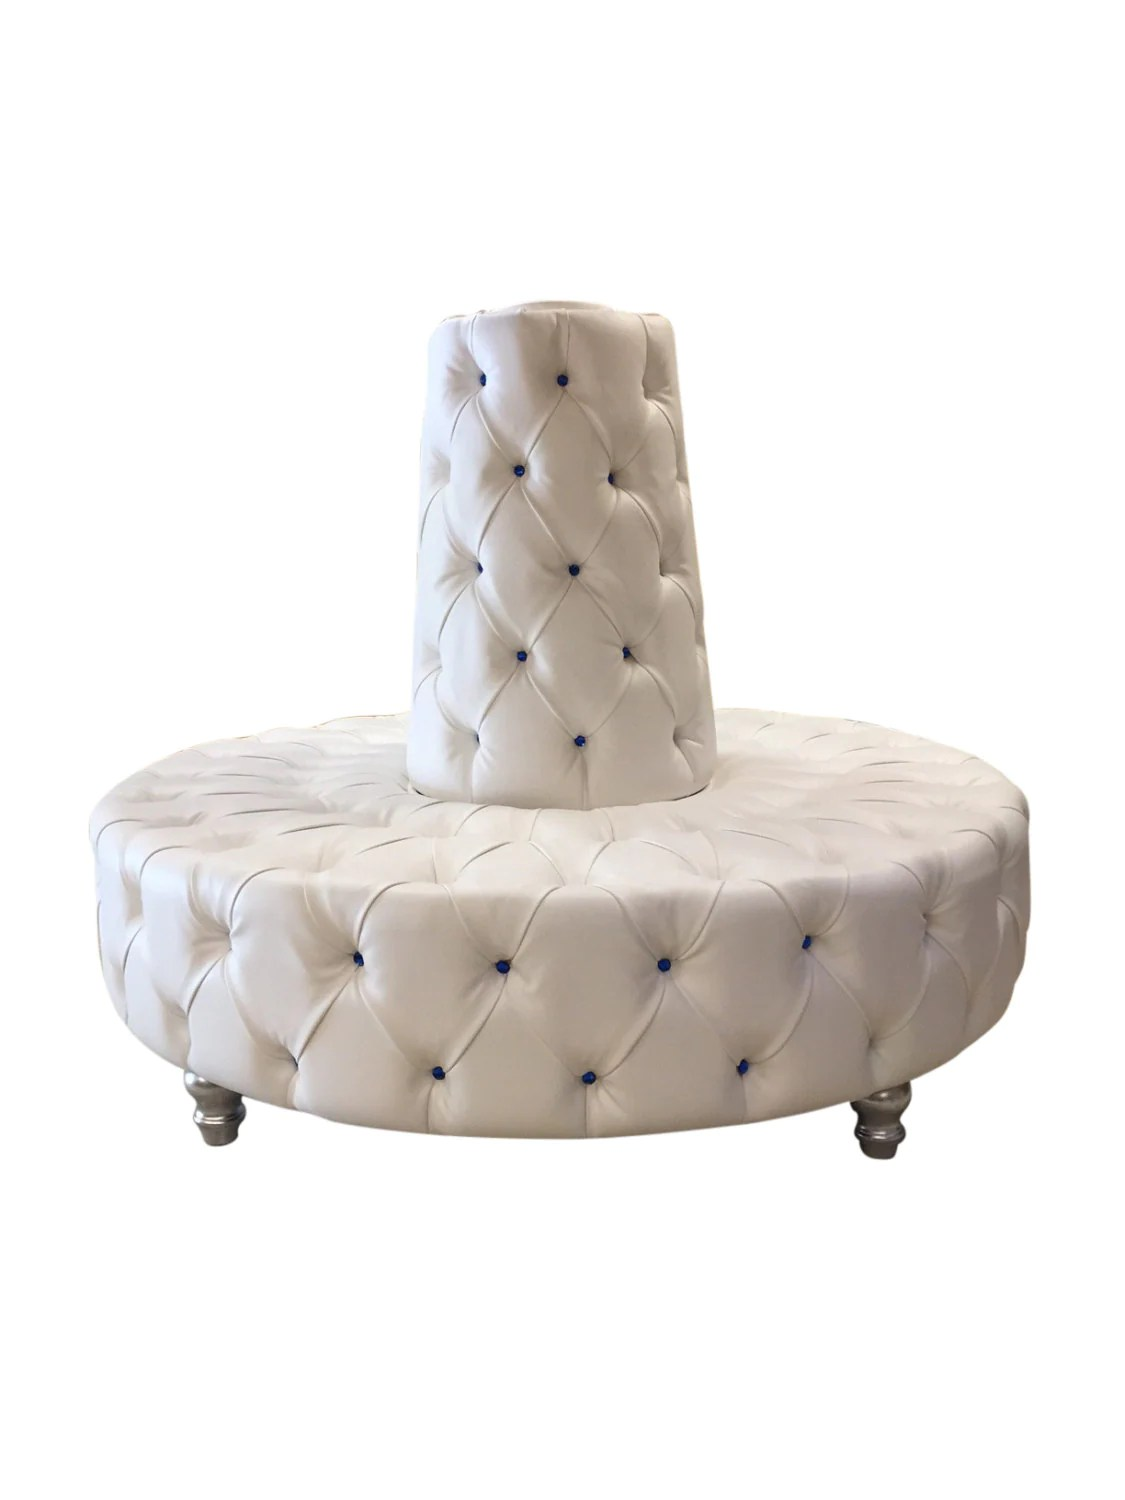 circular chairs for sale best posture chair uk round sofa tufted banquette lobby booth